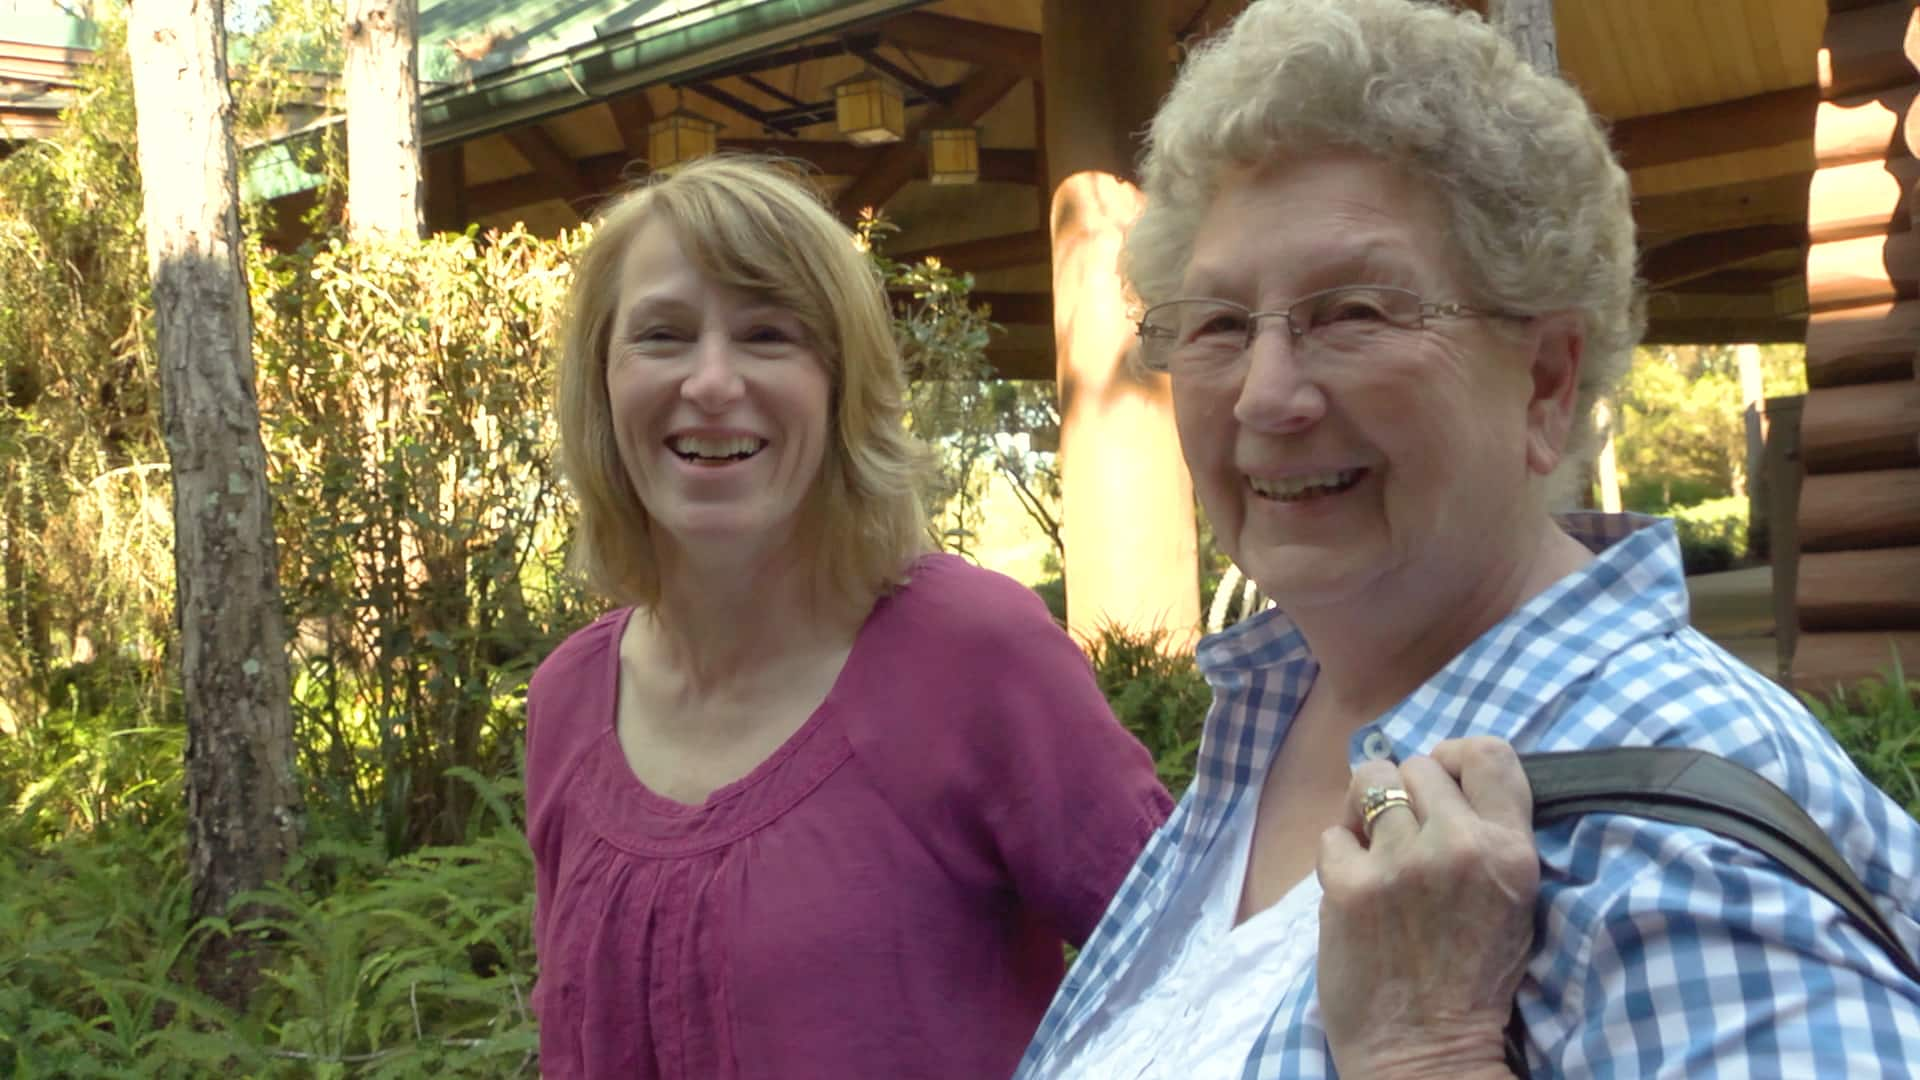 A woman and her mother smile as they stand in front of a log cabin style awning